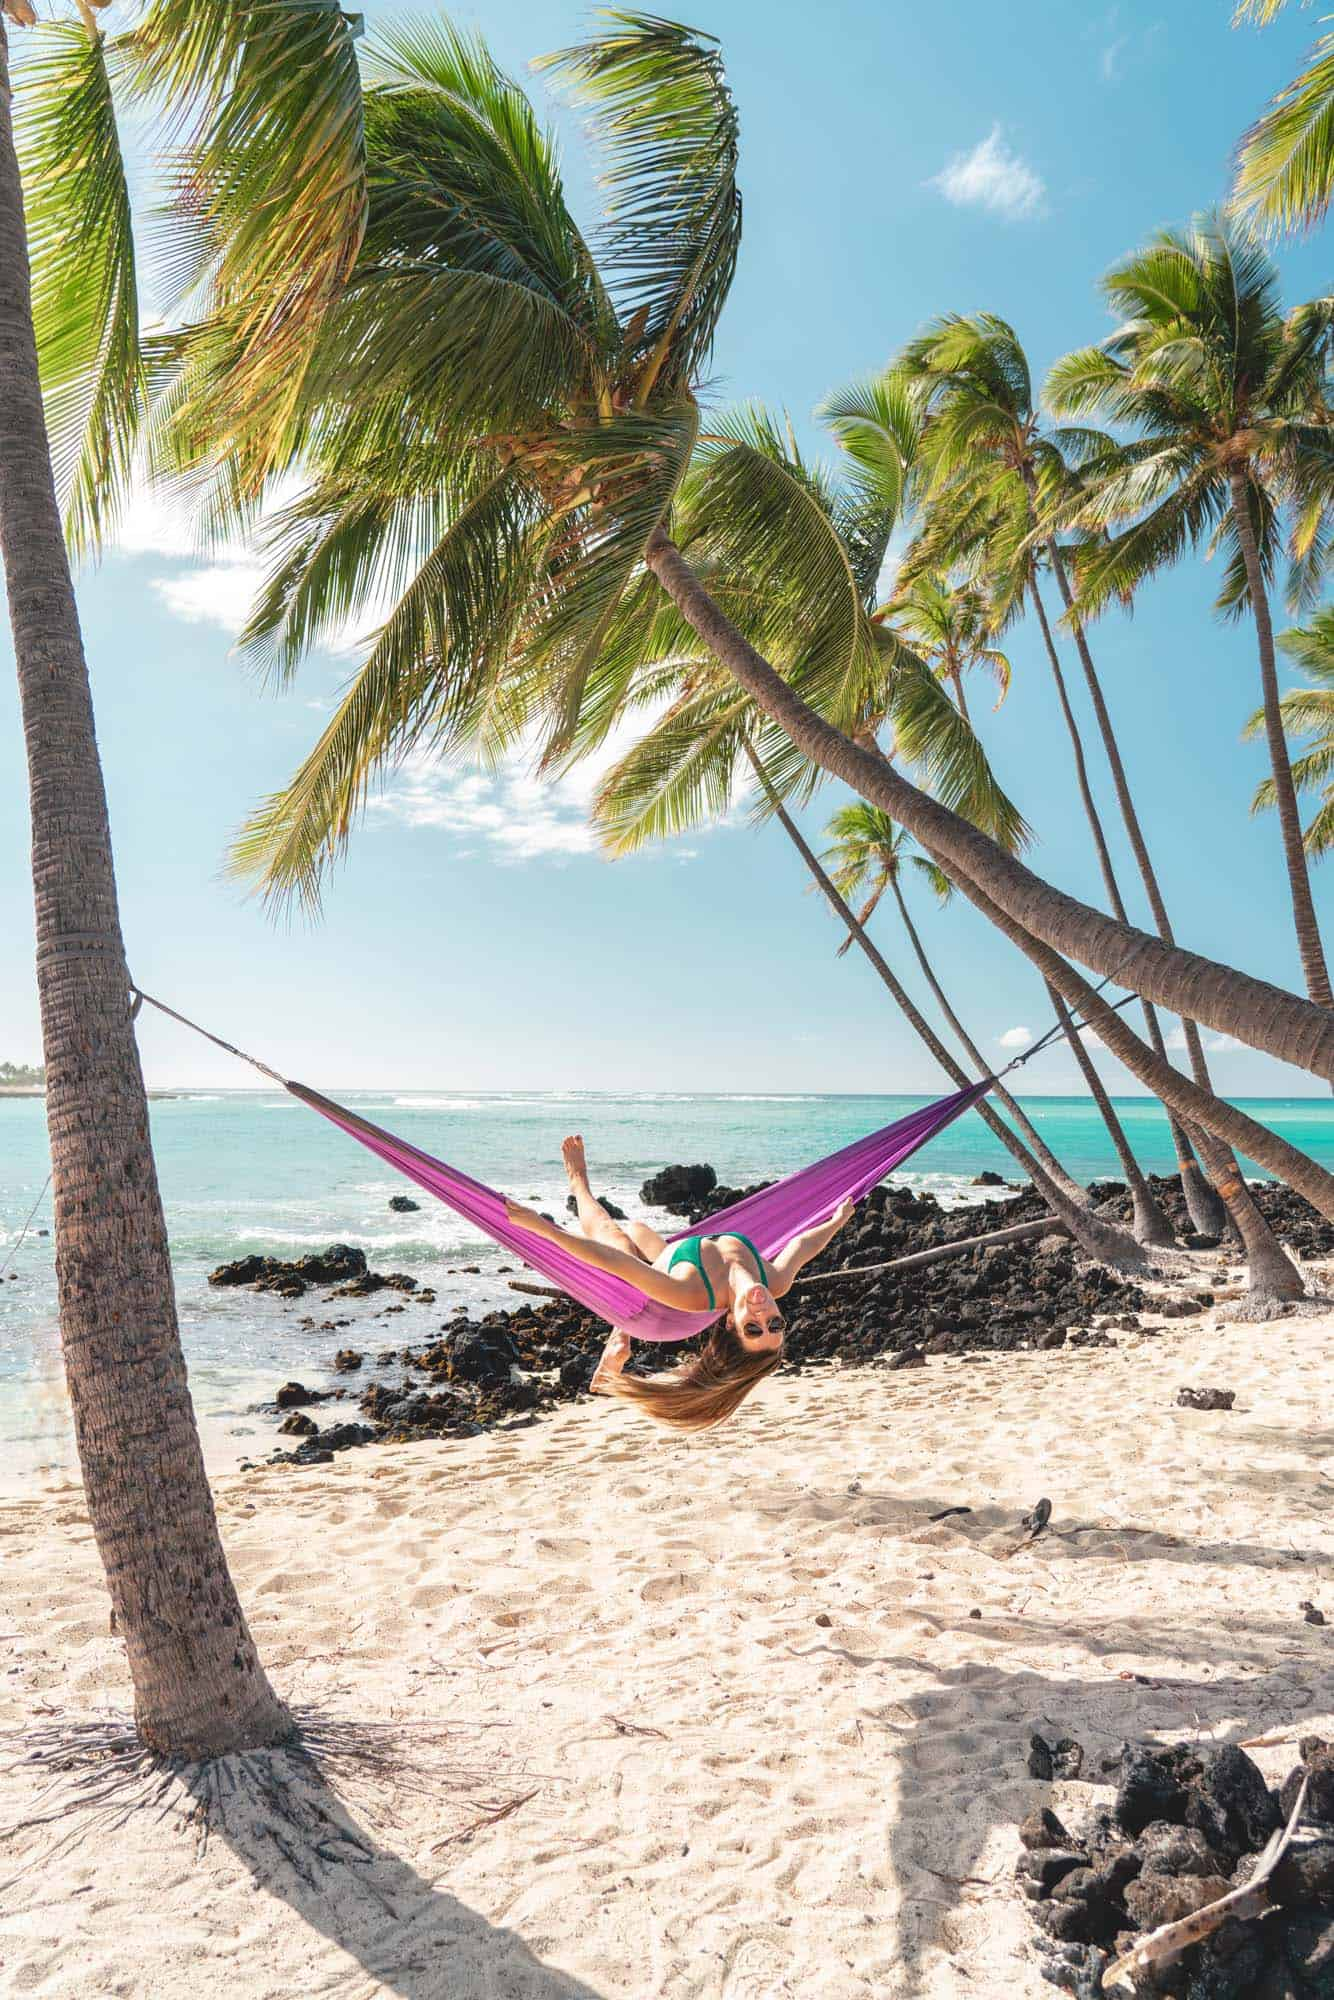 Sophie swings from a hammock in the postcard-perfect scene at Mahaiula Beach.